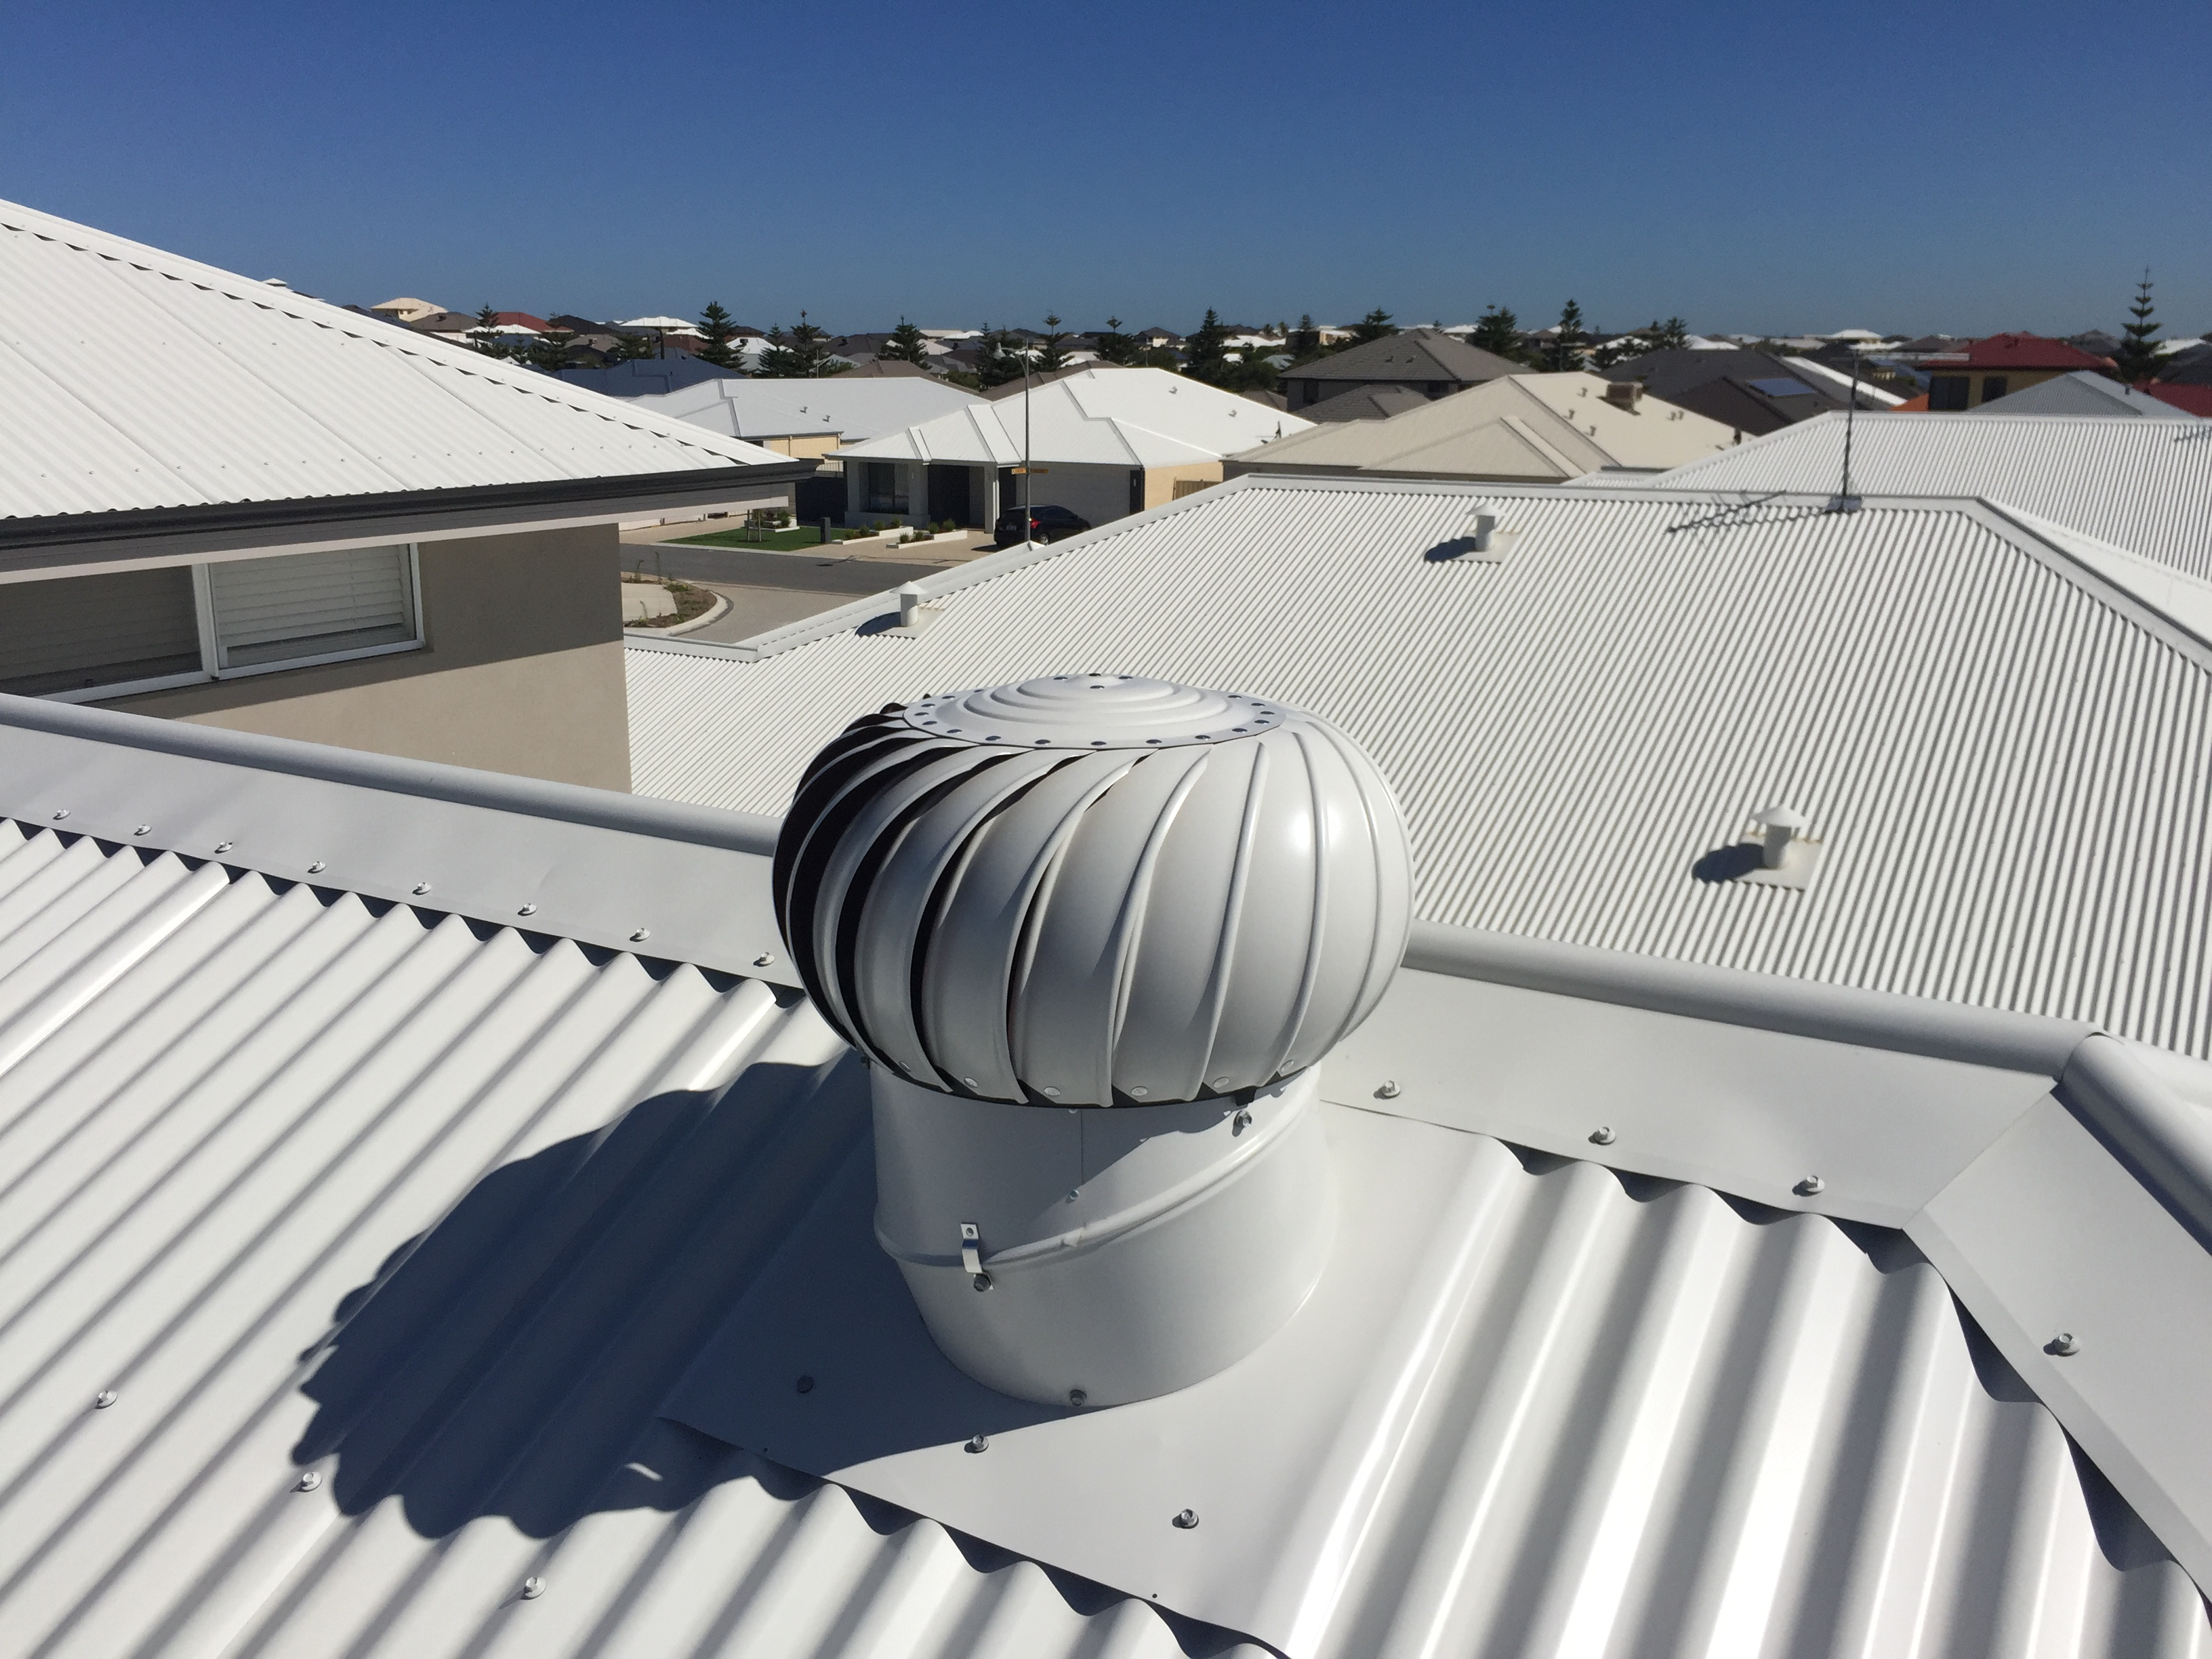 Whirlybird Roof Vents : Whirlybirds and roofing vents wa gallery of